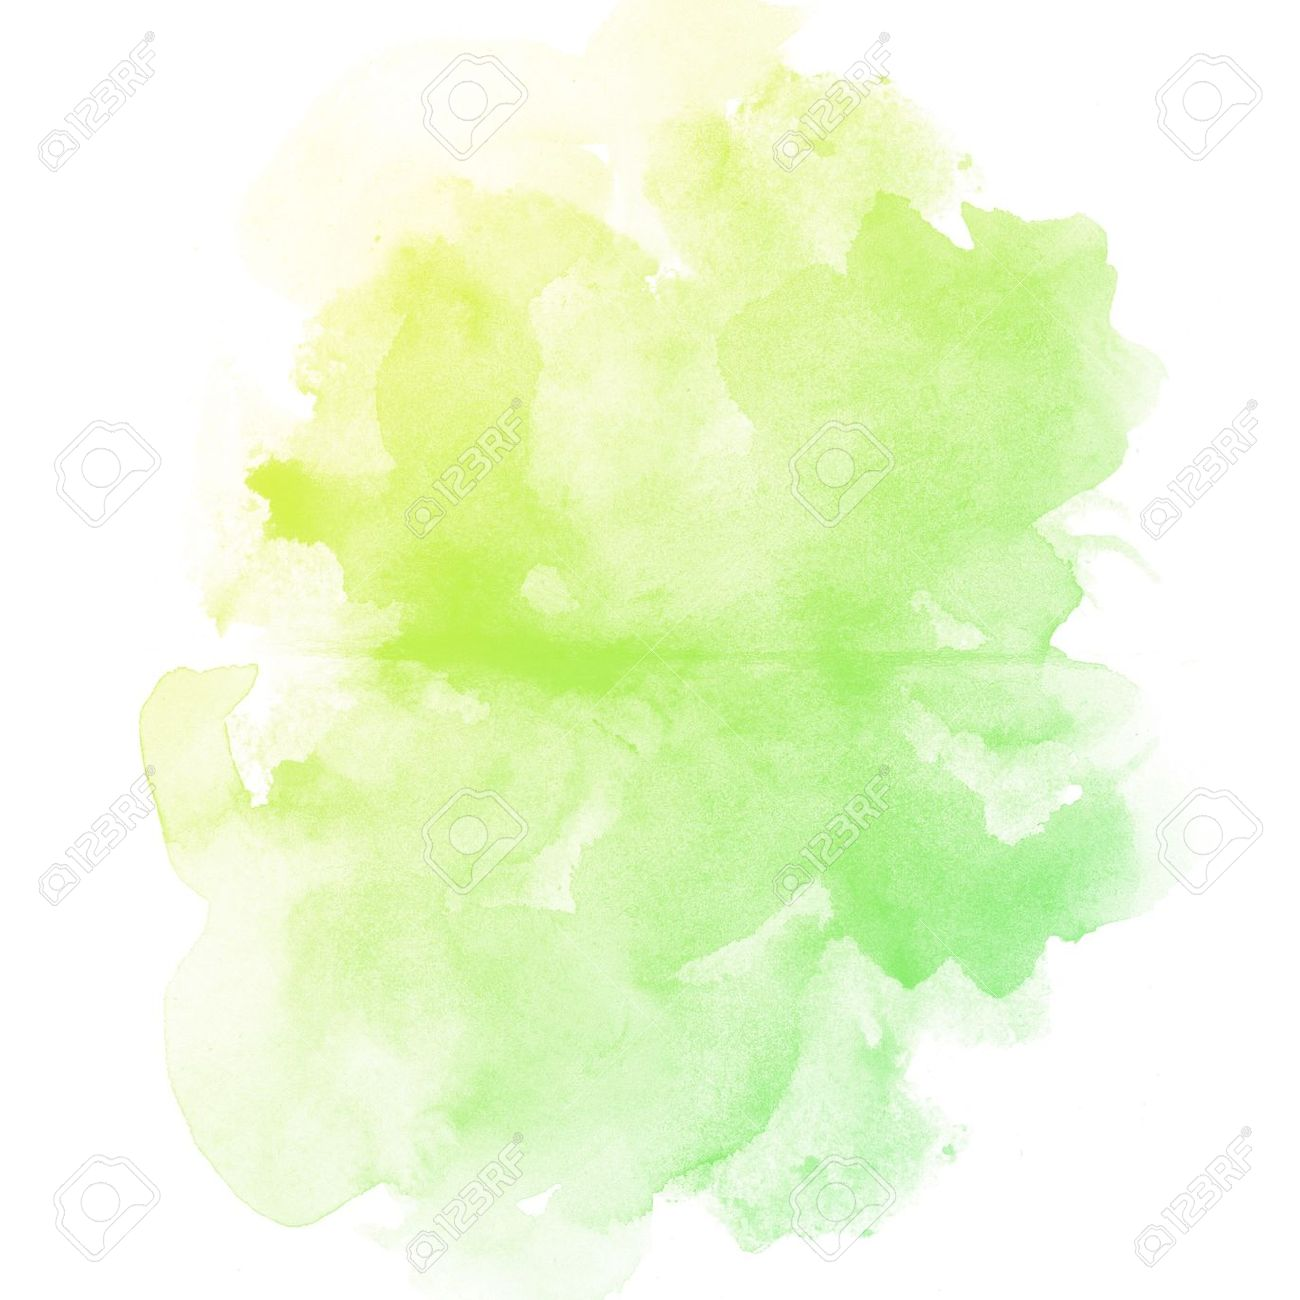 Abstract Watercolor Art Hand Paint On White Background Stock Photo ...